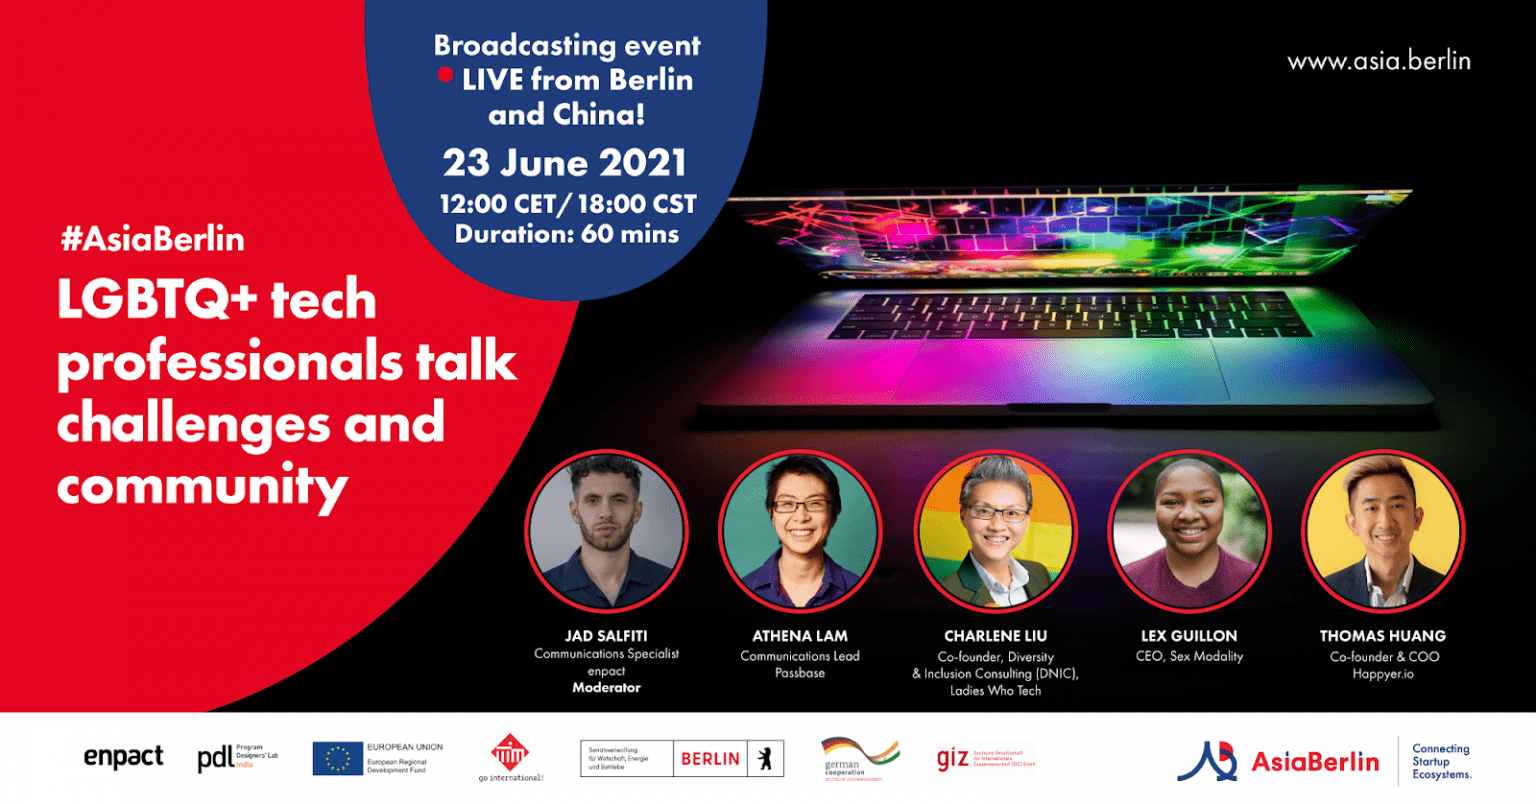 AsiaBerlin Event: LGBTQ+ tech professionals talk challenges and community on 23 JUNE